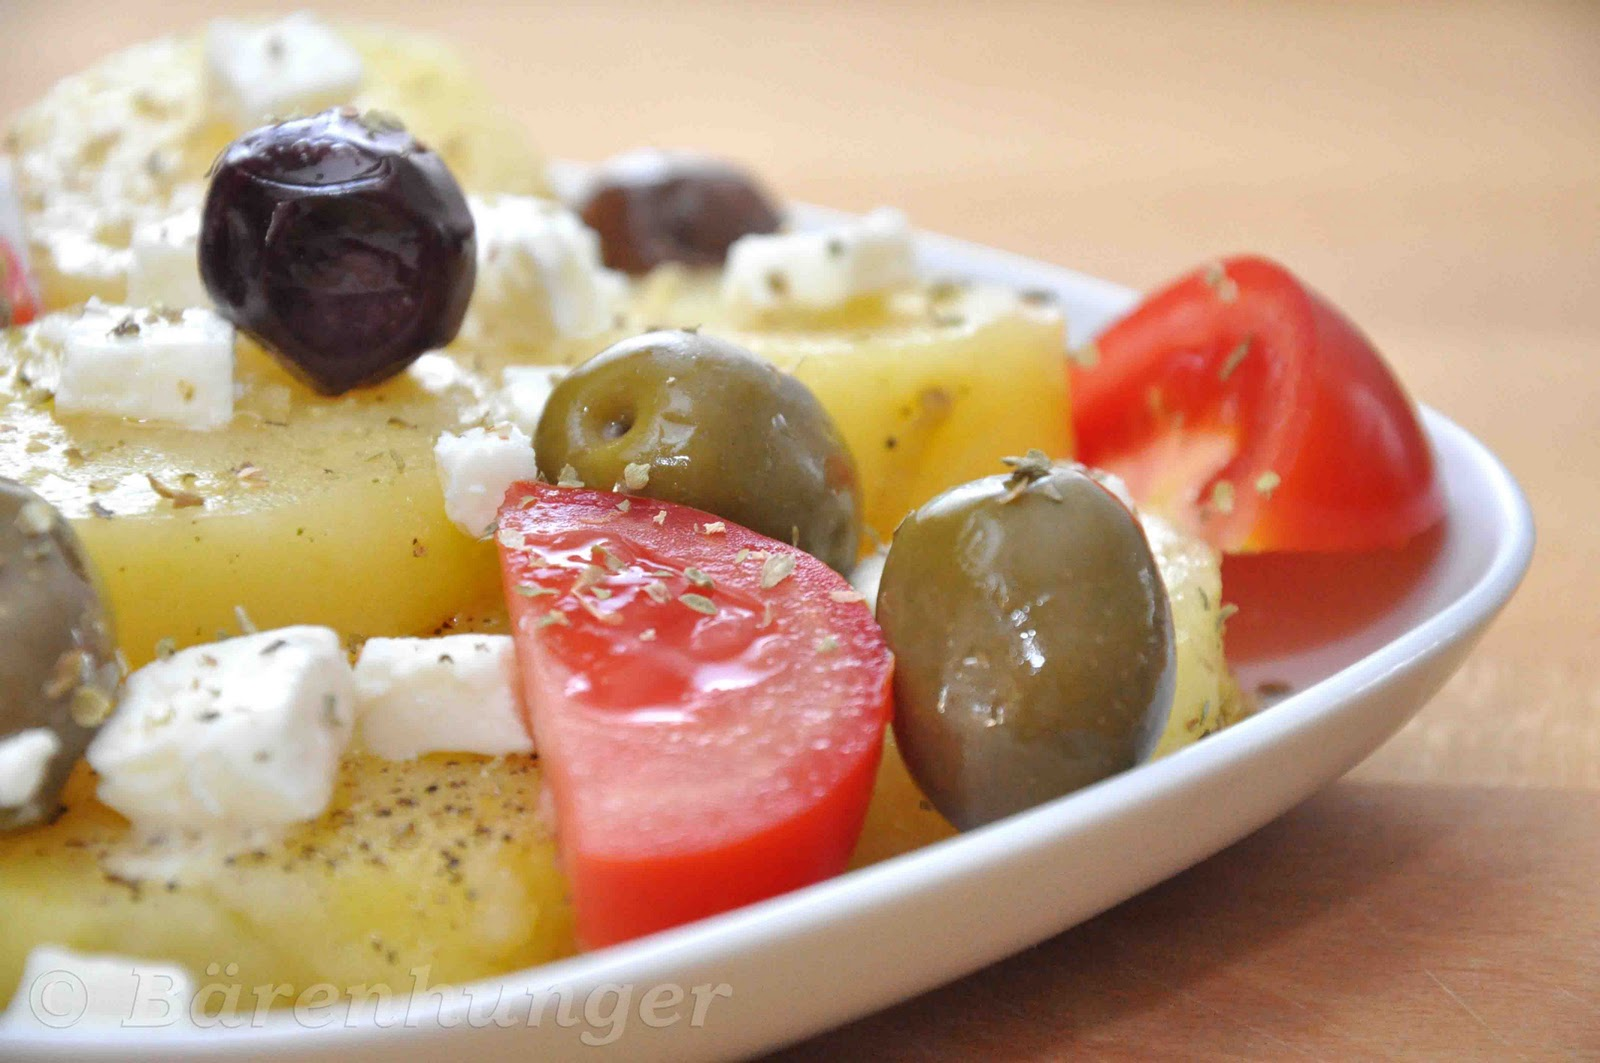 griechischer kartoffelsalat mit oliven feta und tomaten b renhunger. Black Bedroom Furniture Sets. Home Design Ideas